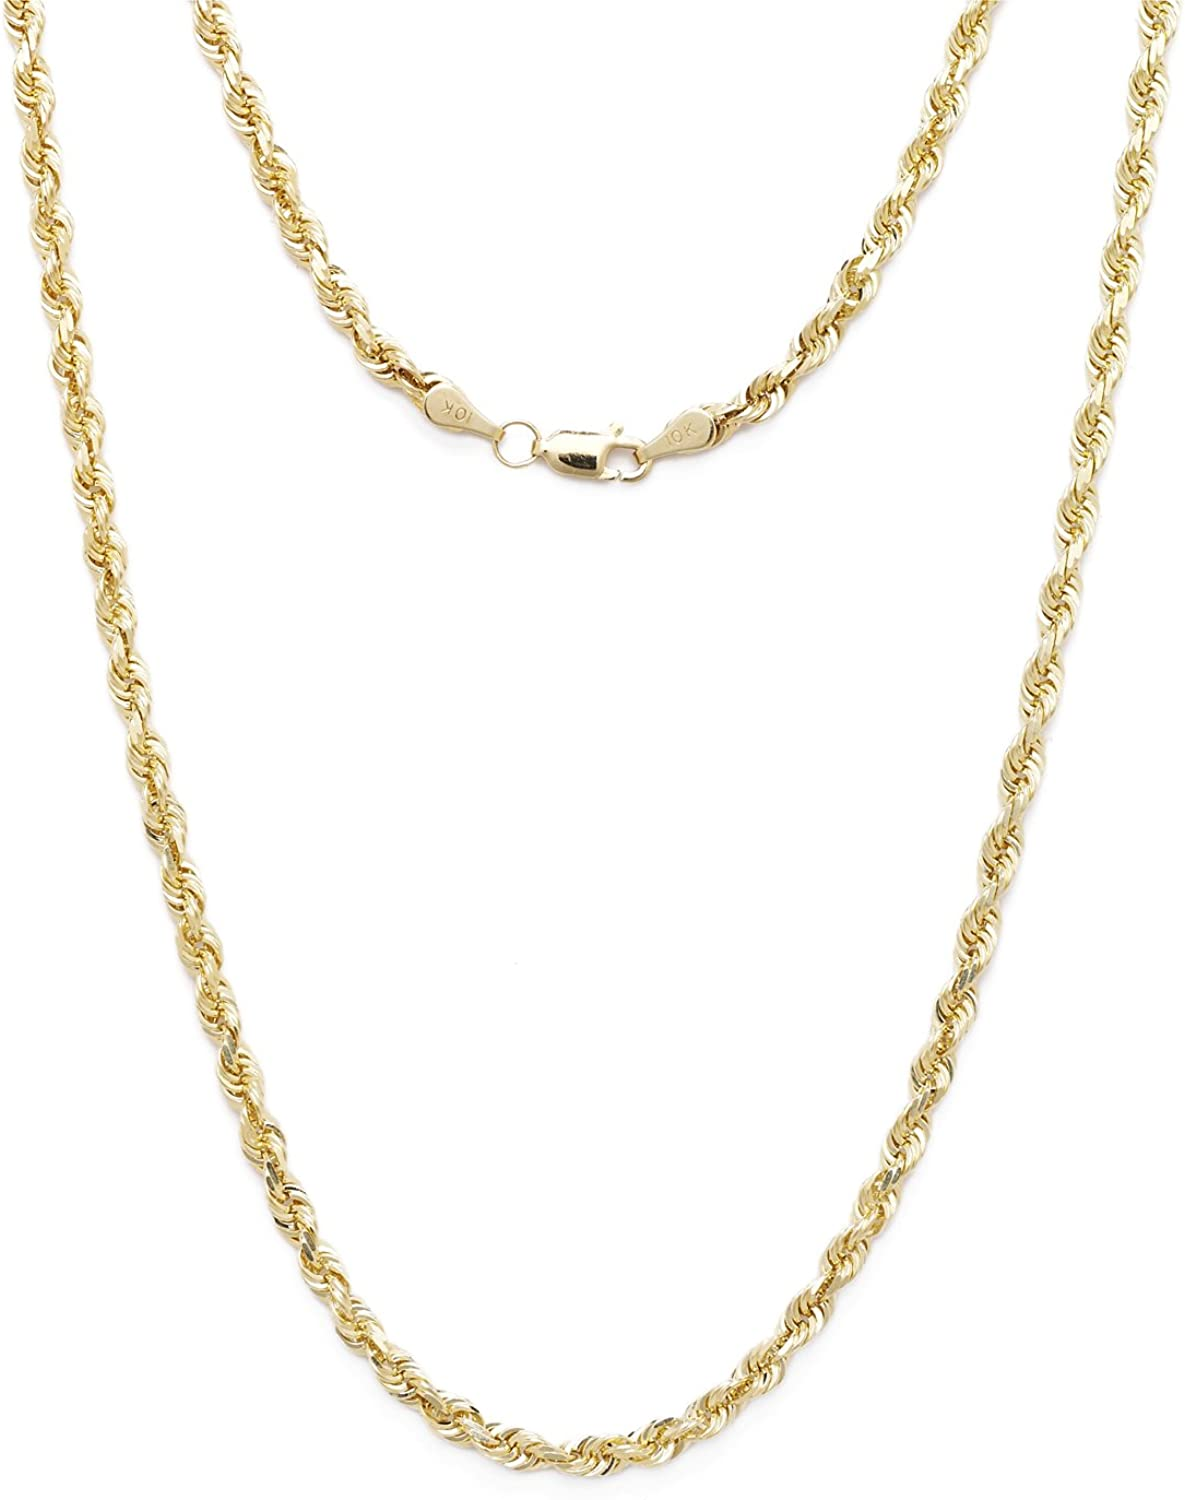 Floreo 10k Yellow Gold 2mm Solid Rope Chain Diamond Max 61% OFF Cut Necklace store